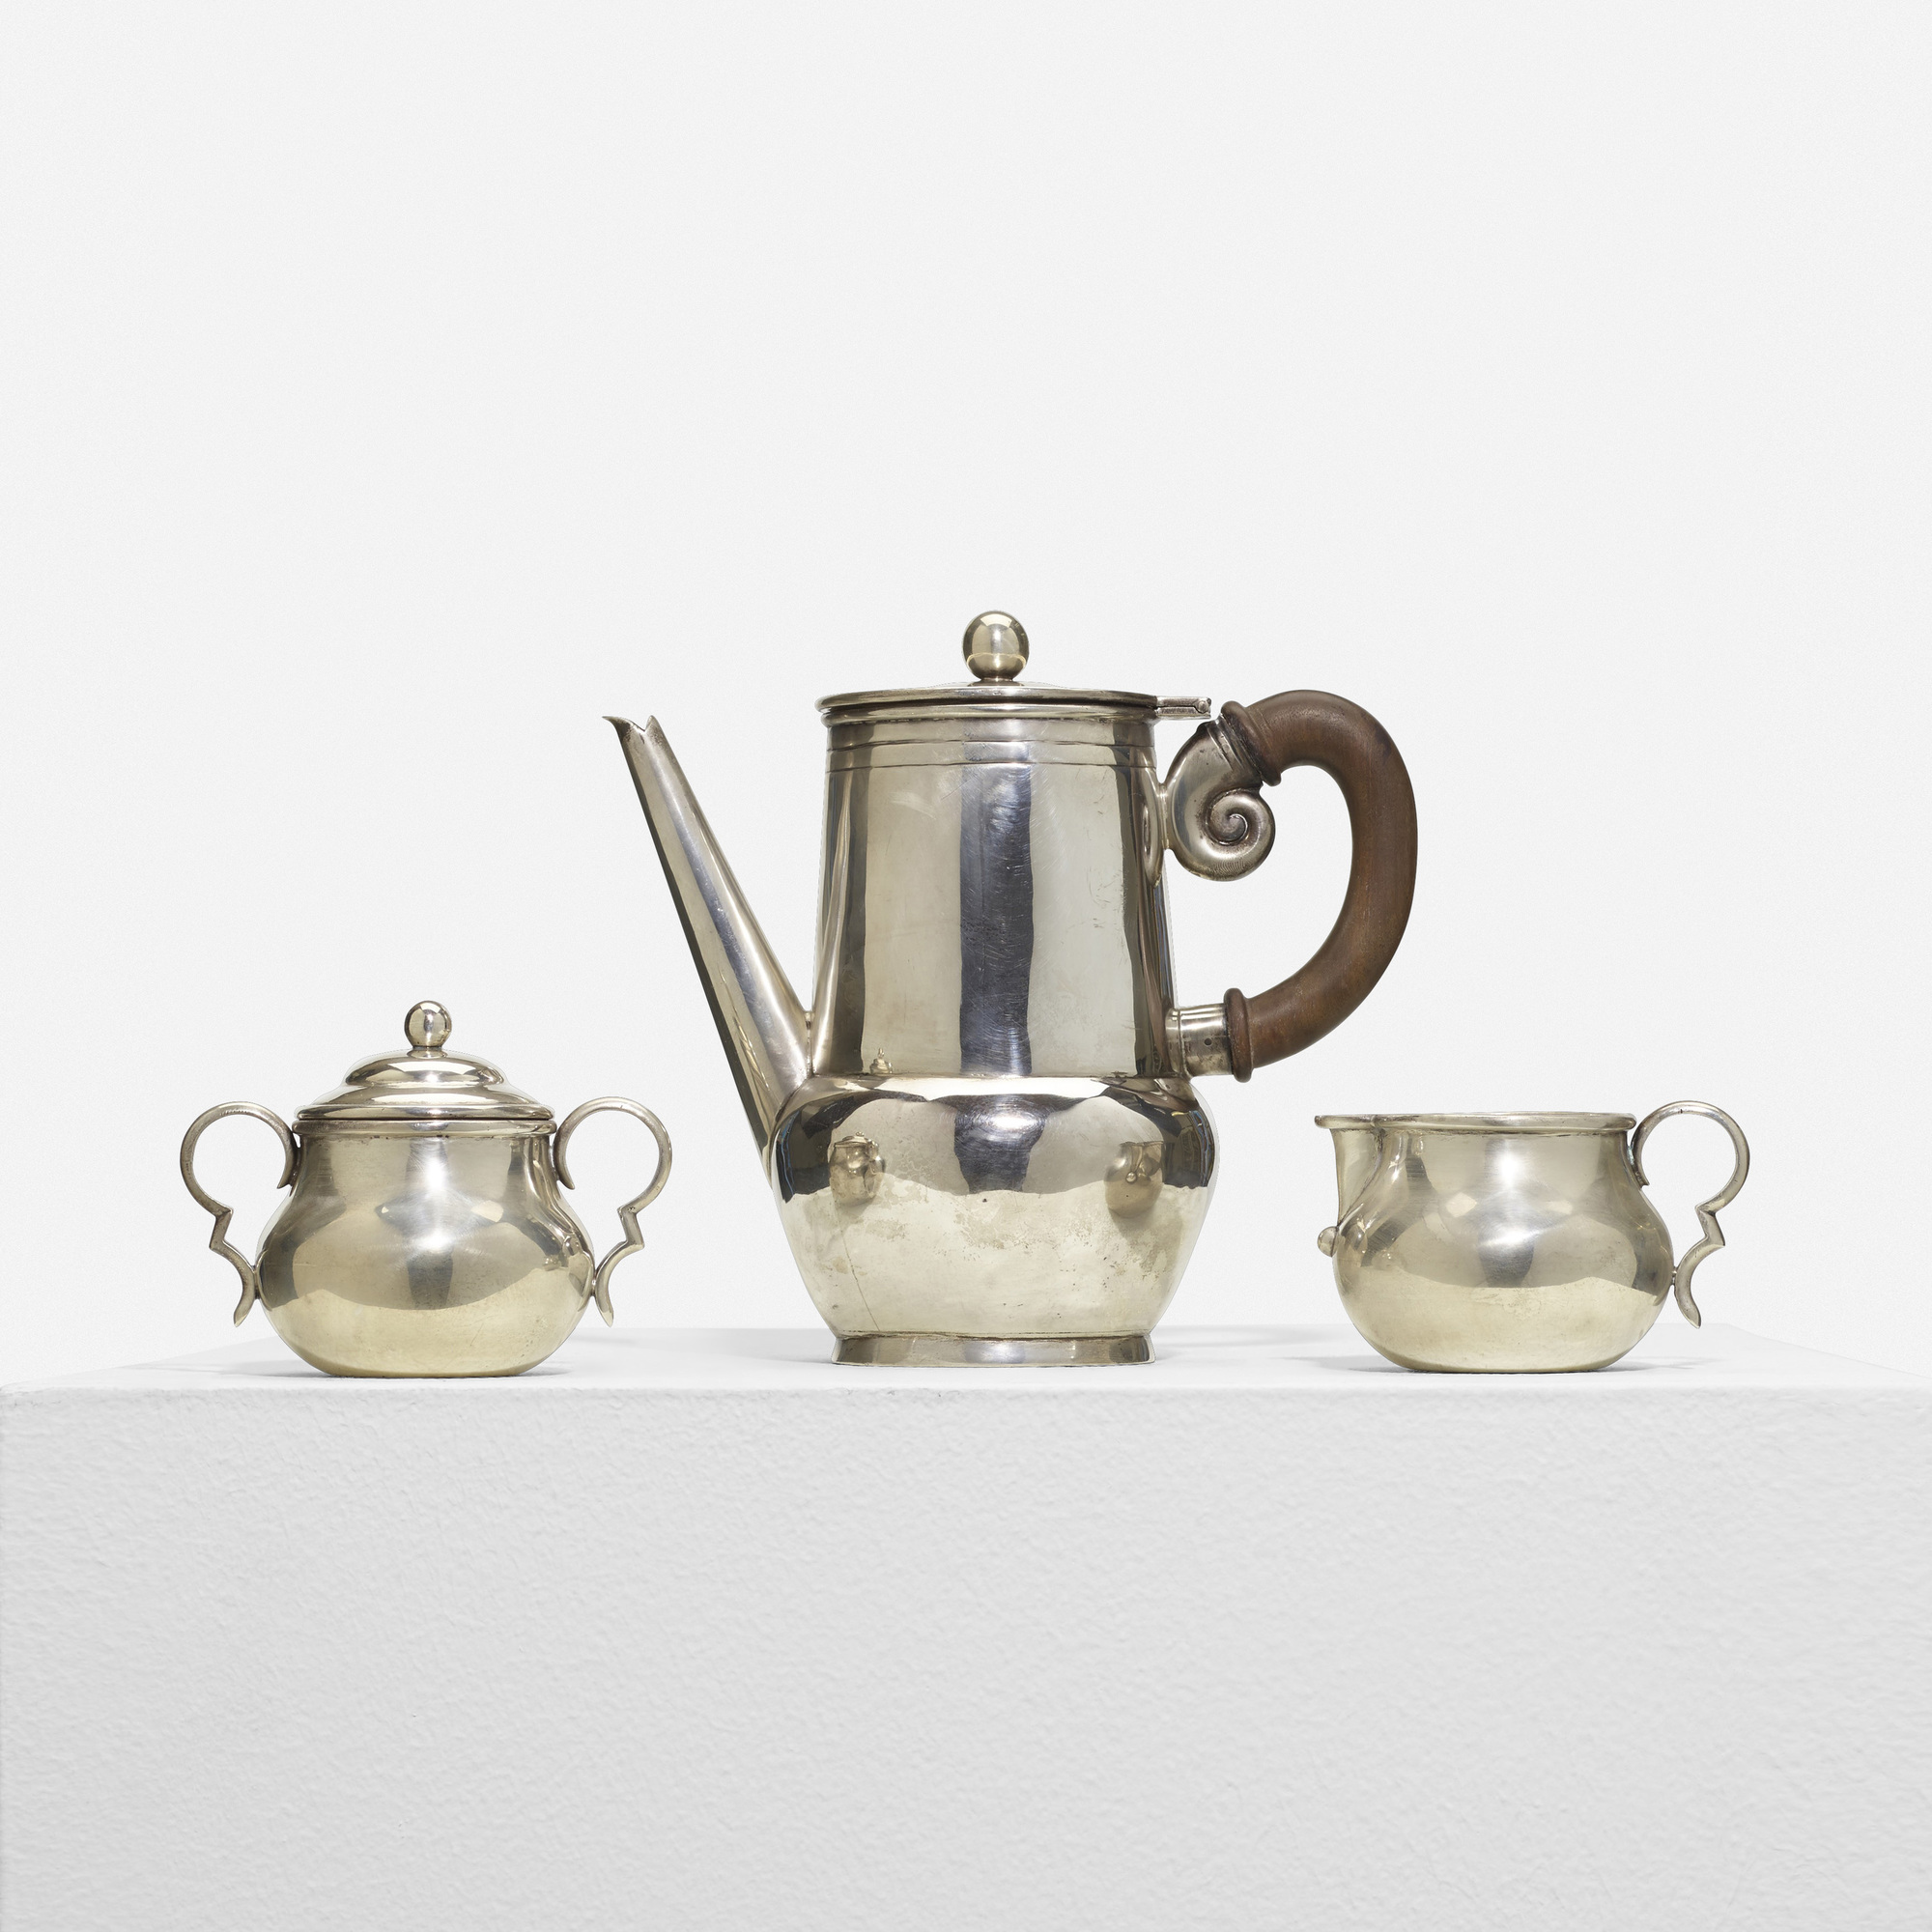 164: William Spratling / tea set (2 of 4)